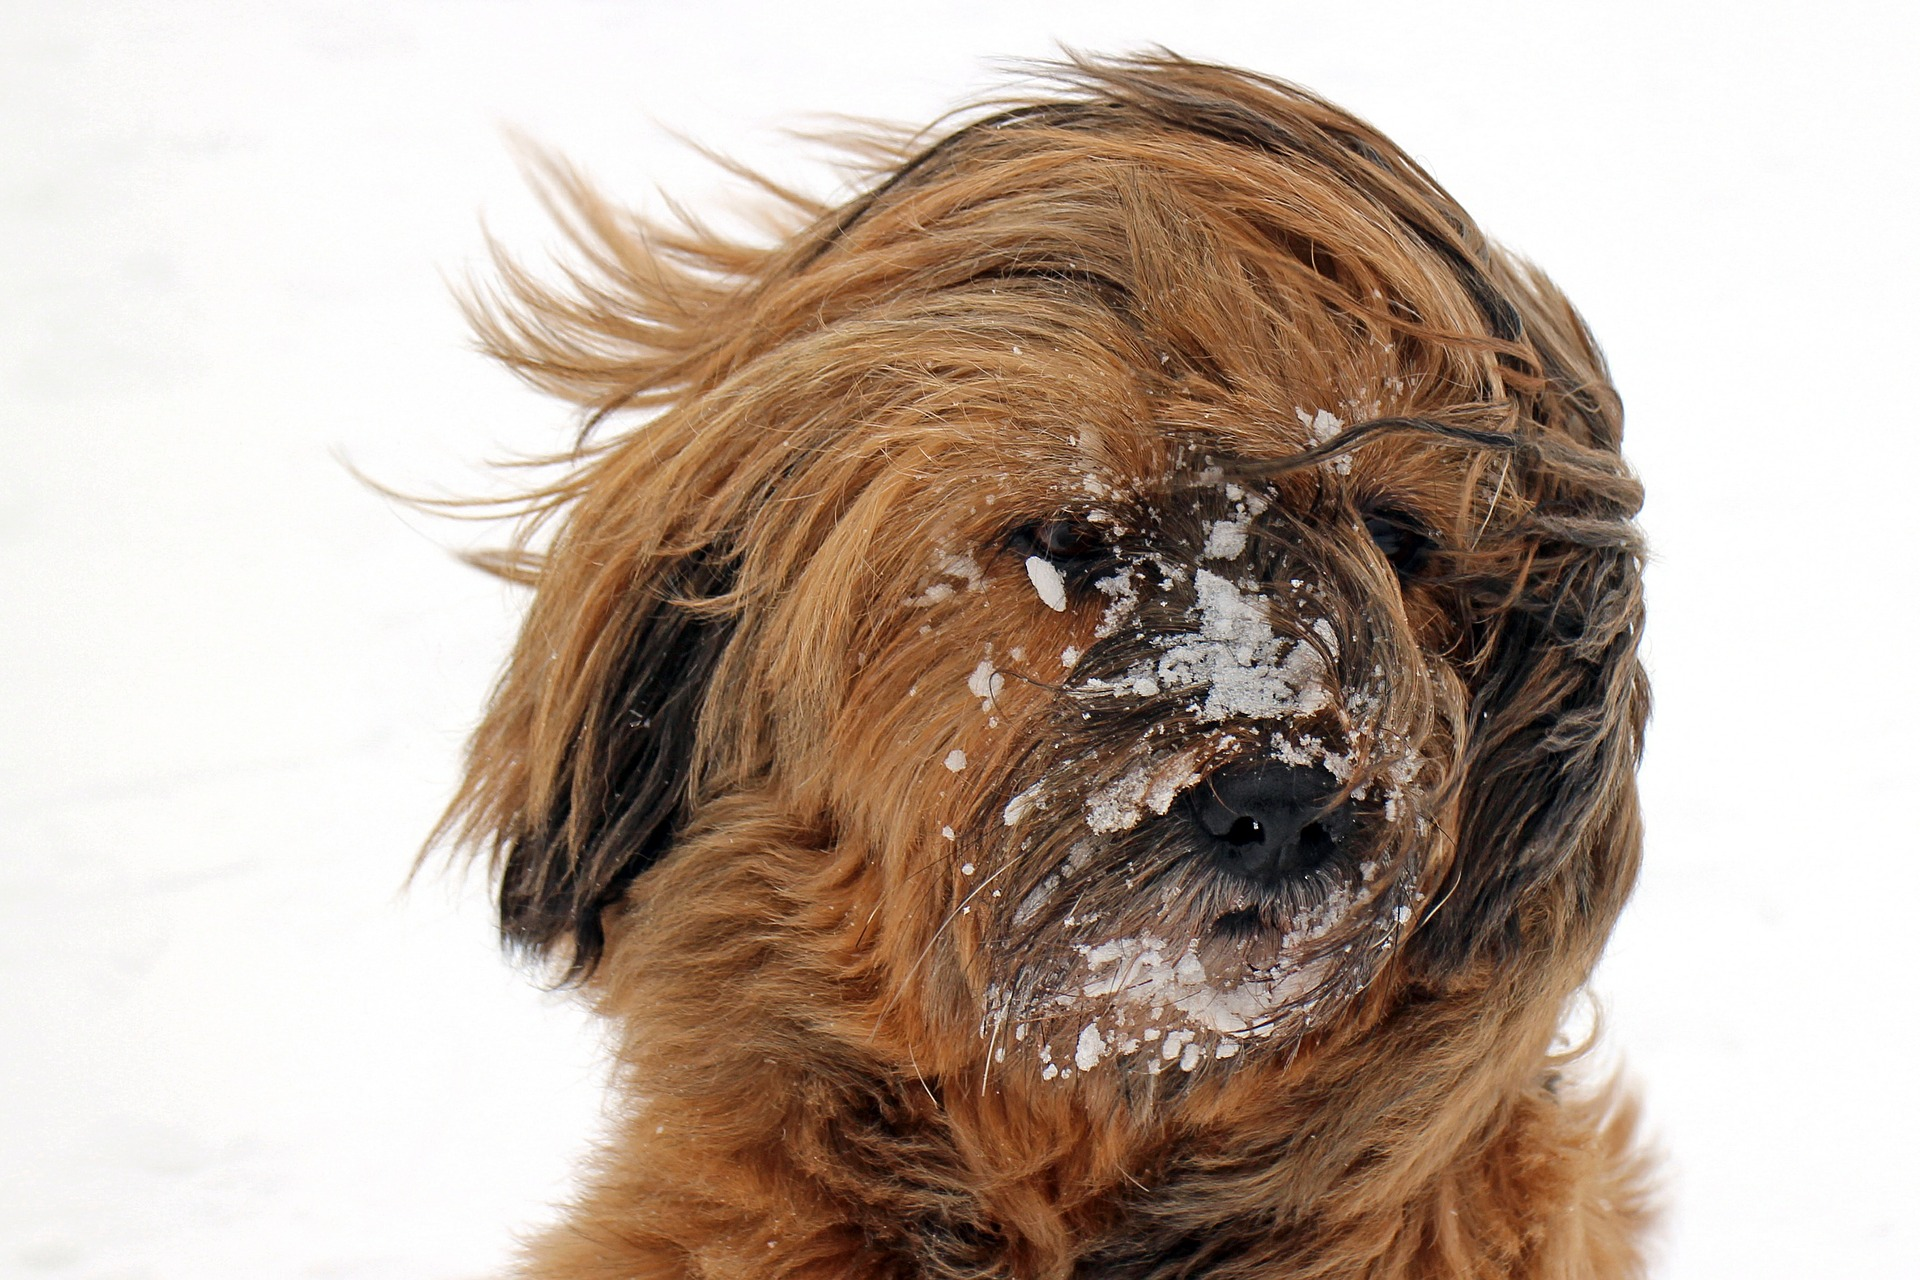 95 ways of saying 'rubbing snow in someone's face'